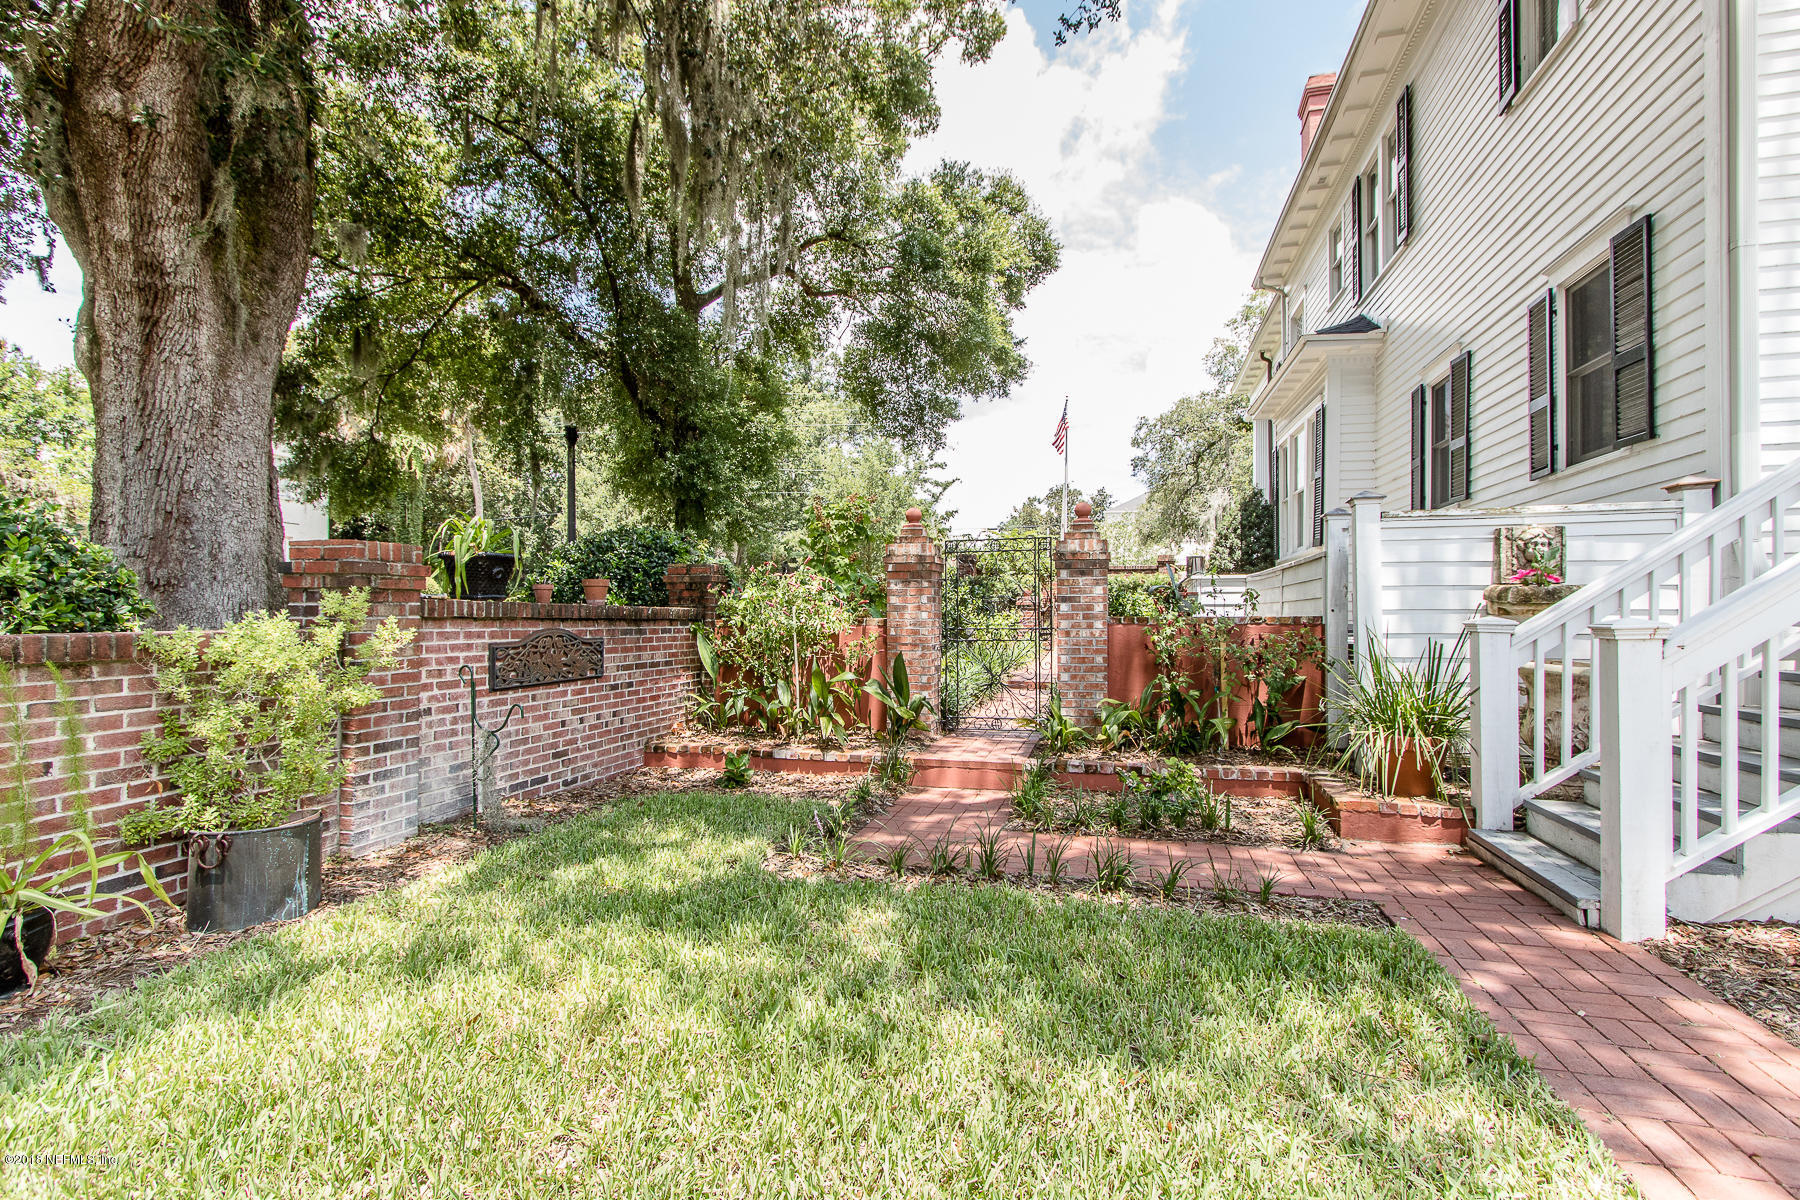 3222 ST JOHNS, JACKSONVILLE, FLORIDA 32205, 4 Bedrooms Bedrooms, ,2 BathroomsBathrooms,Residential - single family,For sale,ST JOHNS,945392